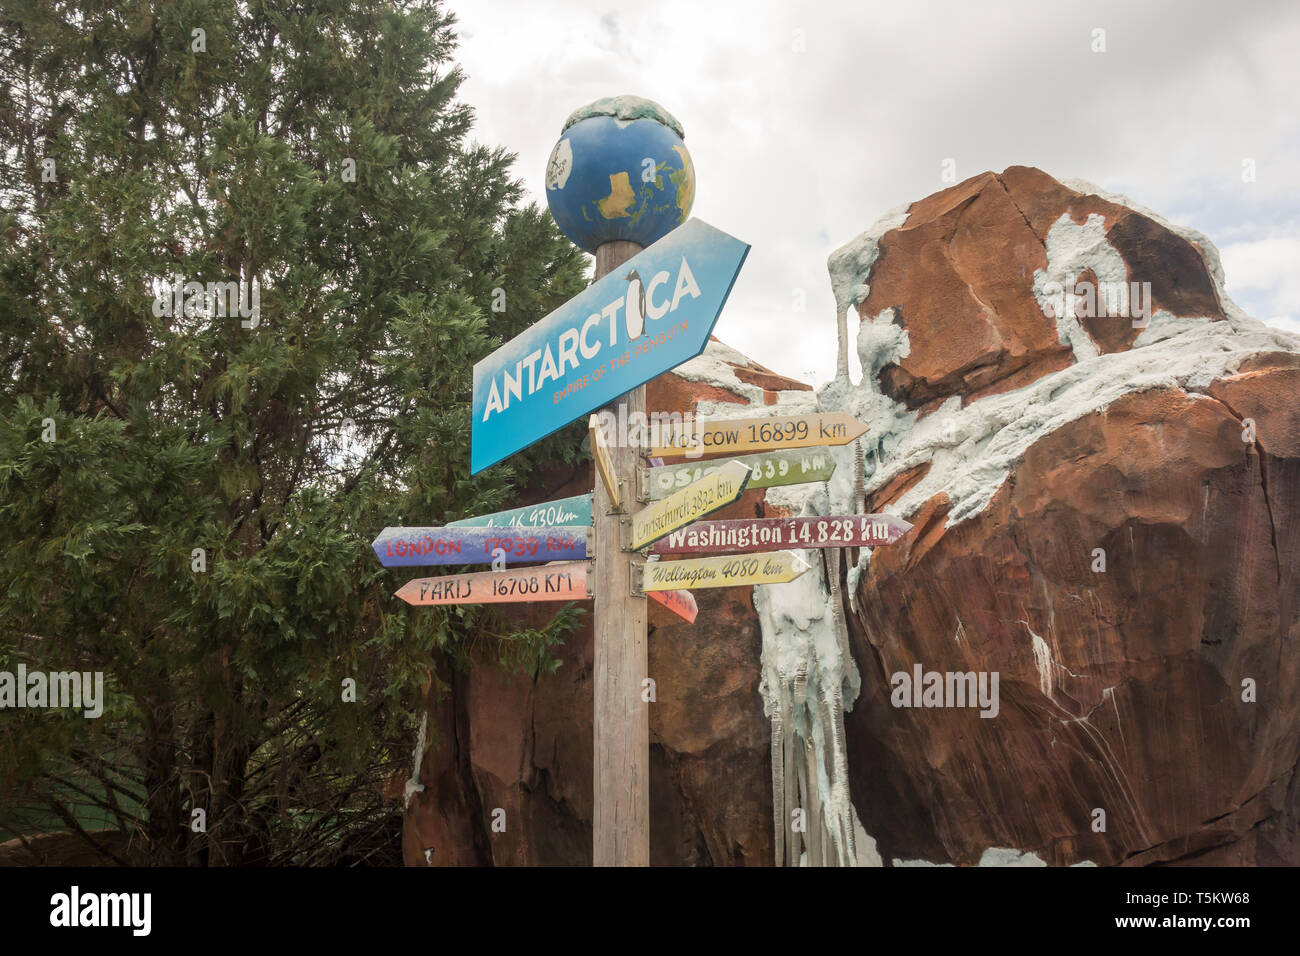 A sign board to welcome visitors to the Antarctica: Empire of the Penguin at Seaworld in Orlando, Florida. - Stock Image